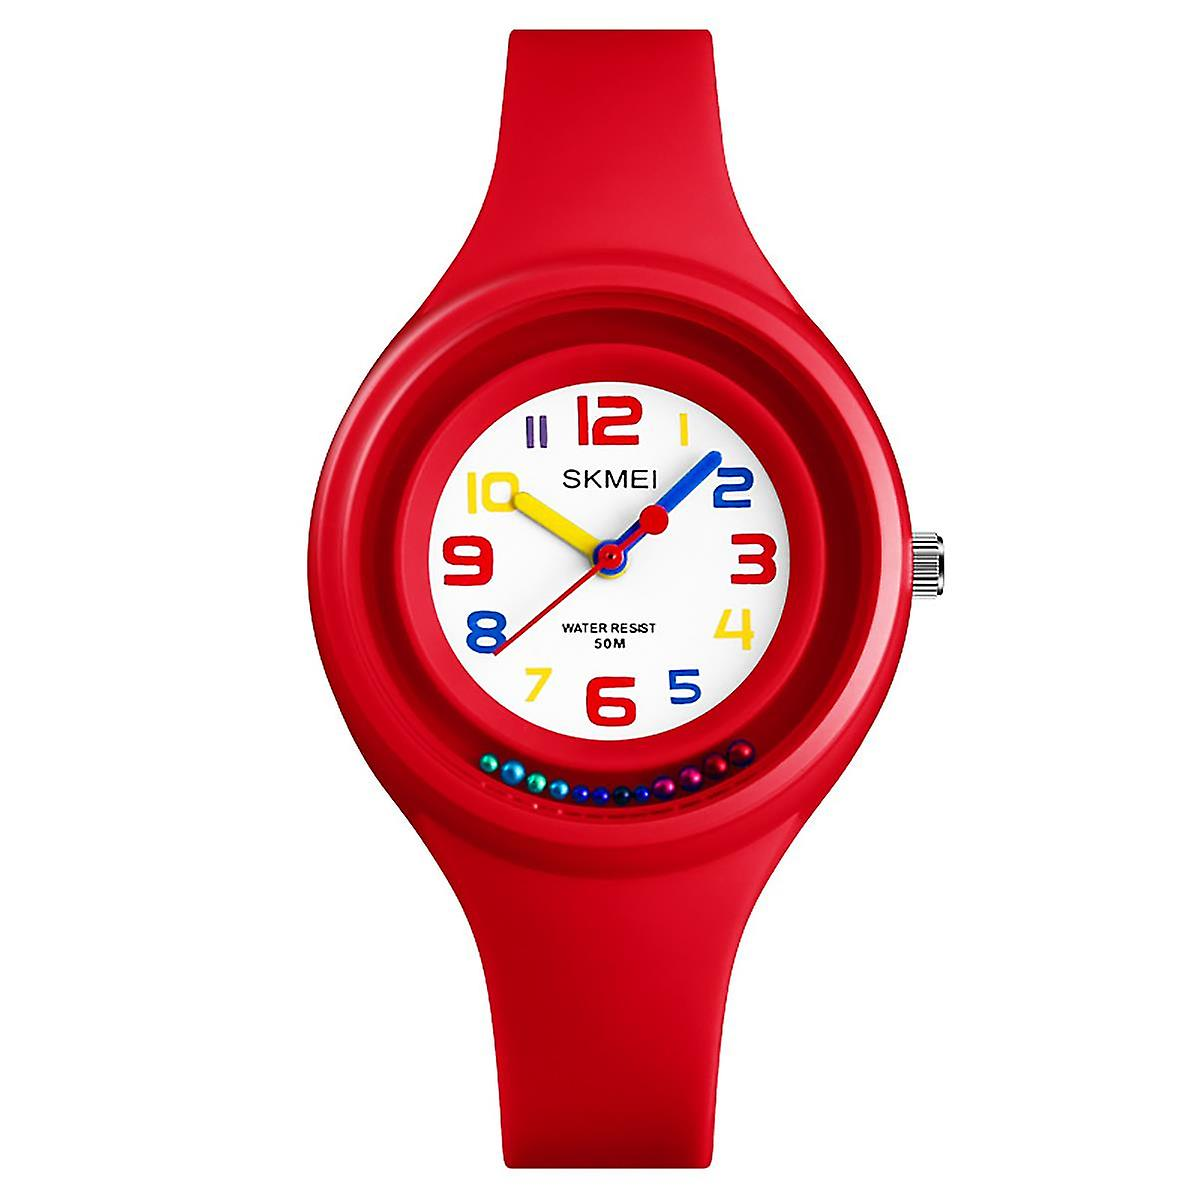 SKMEI Blue Analogue Kids Watch Clear Display Numbers Colours First Watch Rotating Beads Cute Watch Perfect For Ages 5+